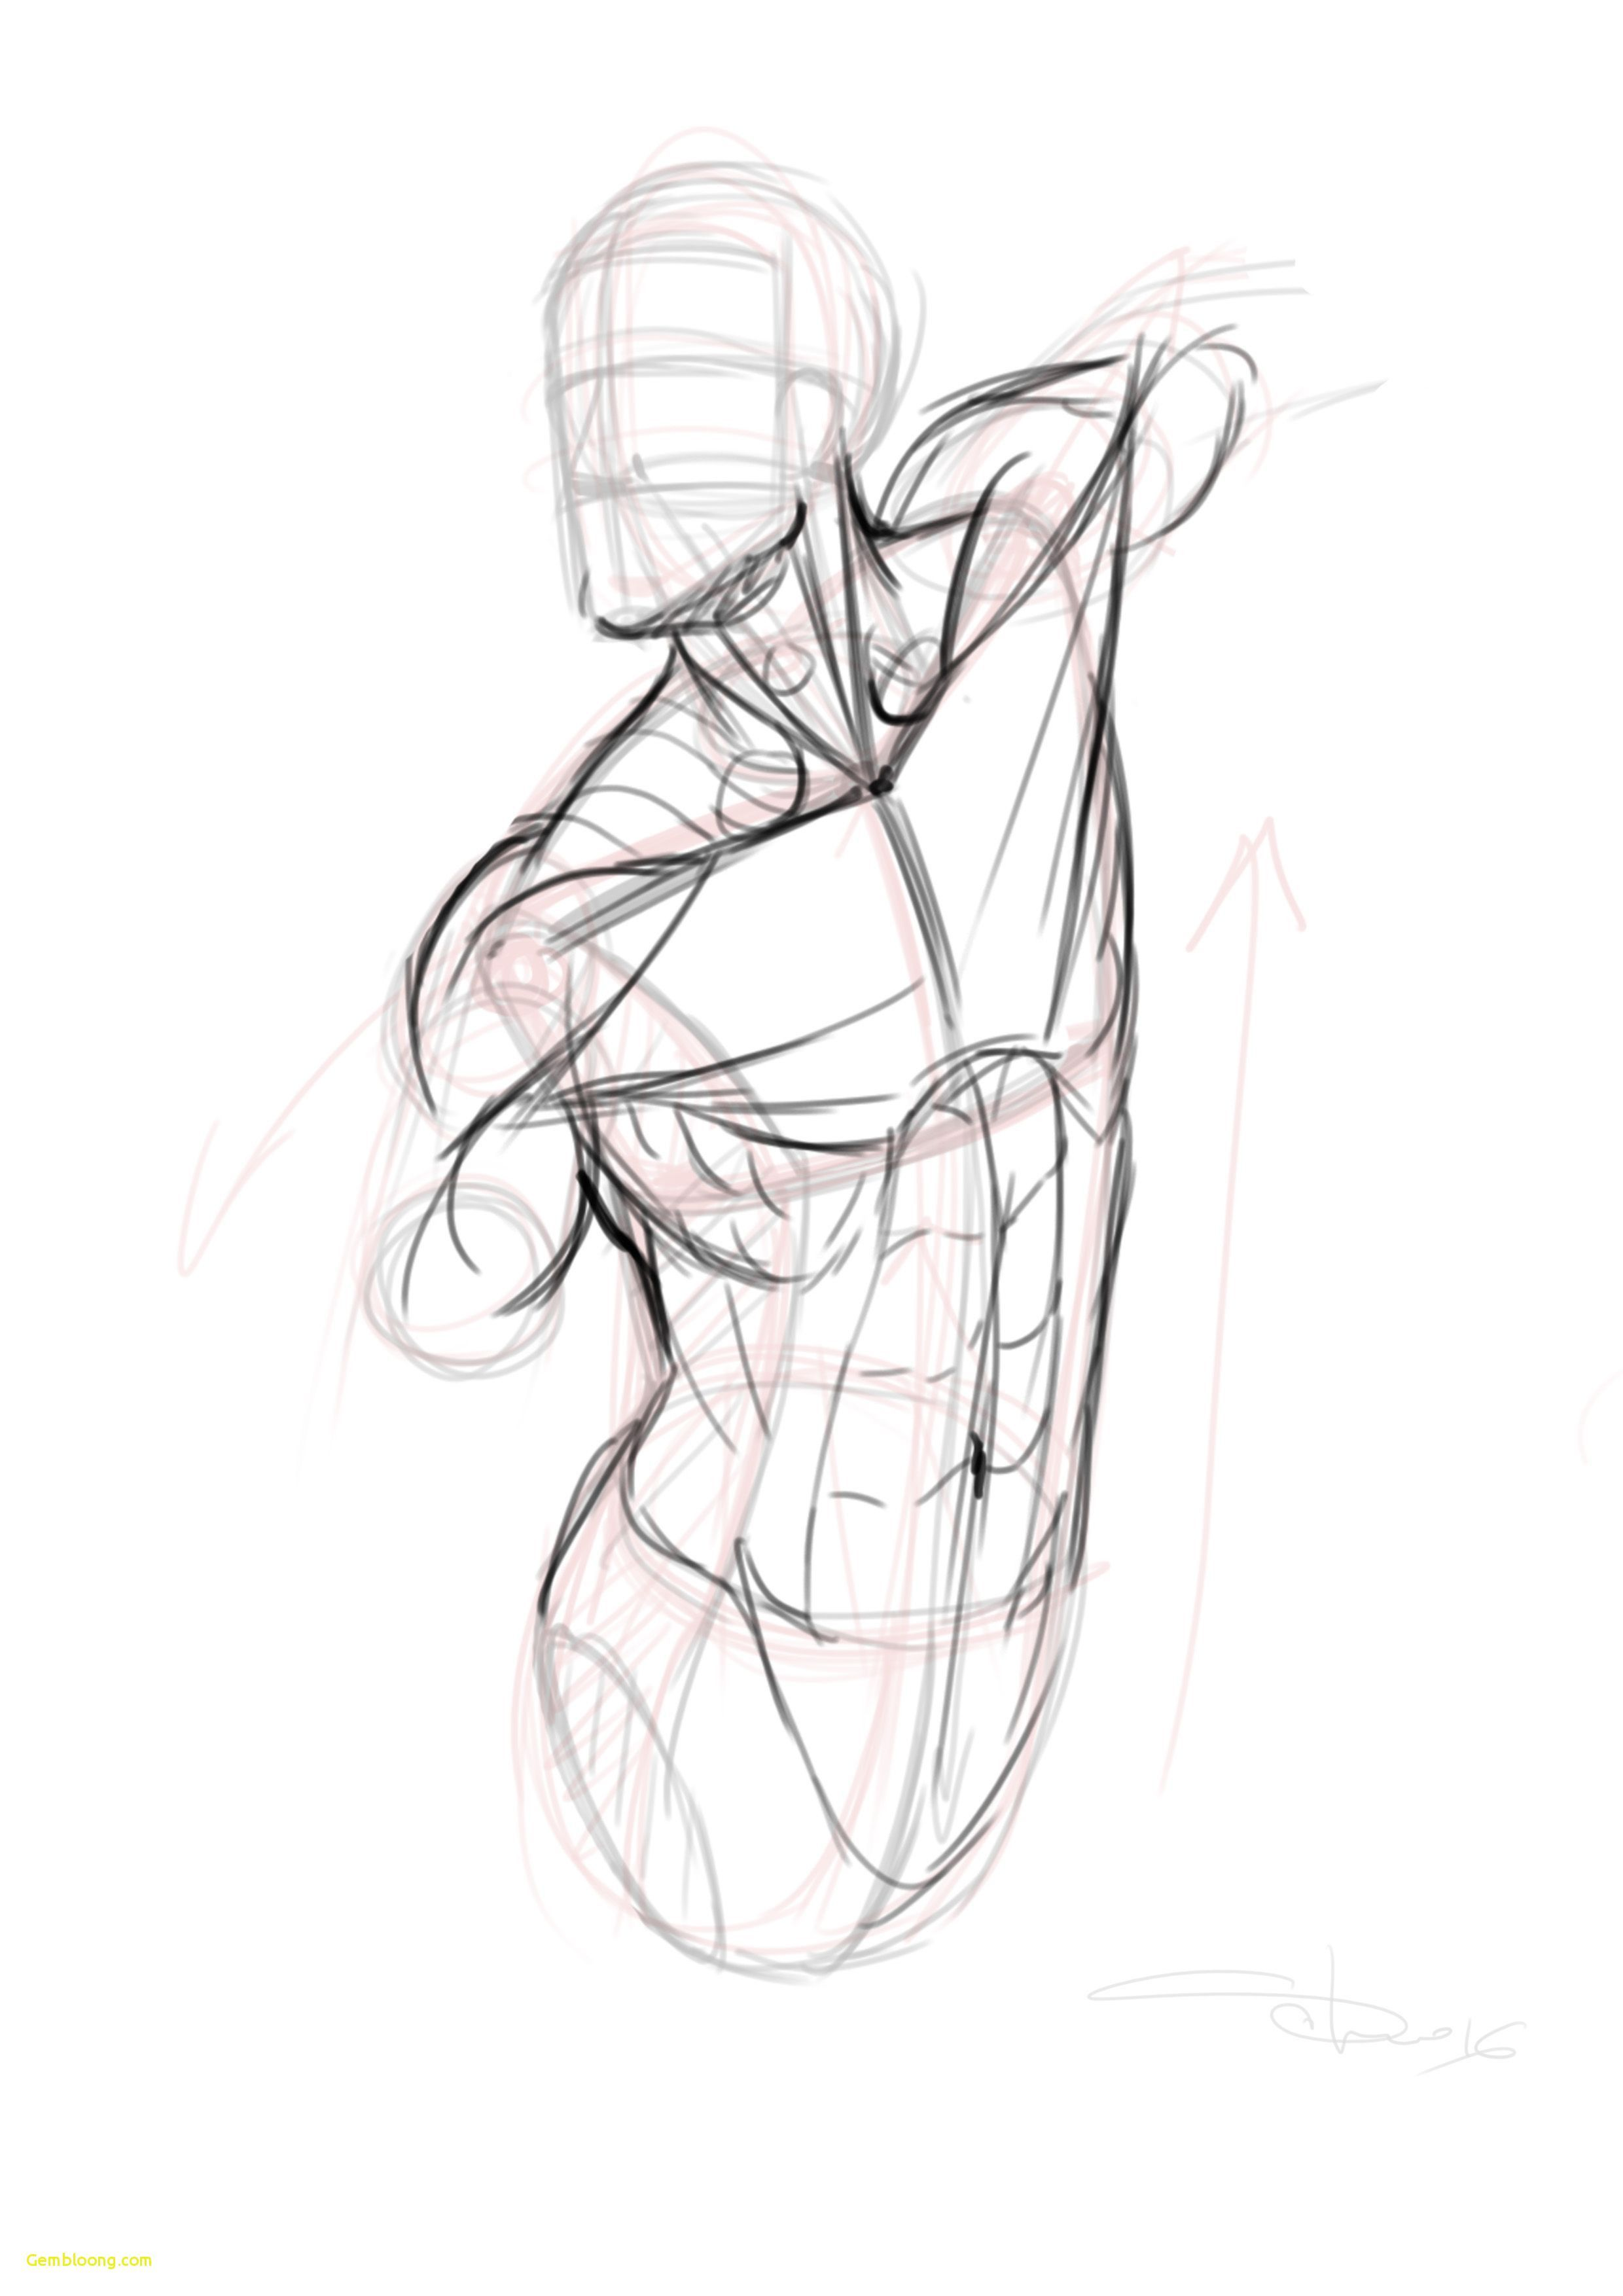 25 Ordinary Drawing Anatomy For Beginners Anatomy Reference Human Anatomy Drawing Anatomy Drawing See more ideas about body sketches, sketches, anatomy drawing. human anatomy drawing anatomy drawing